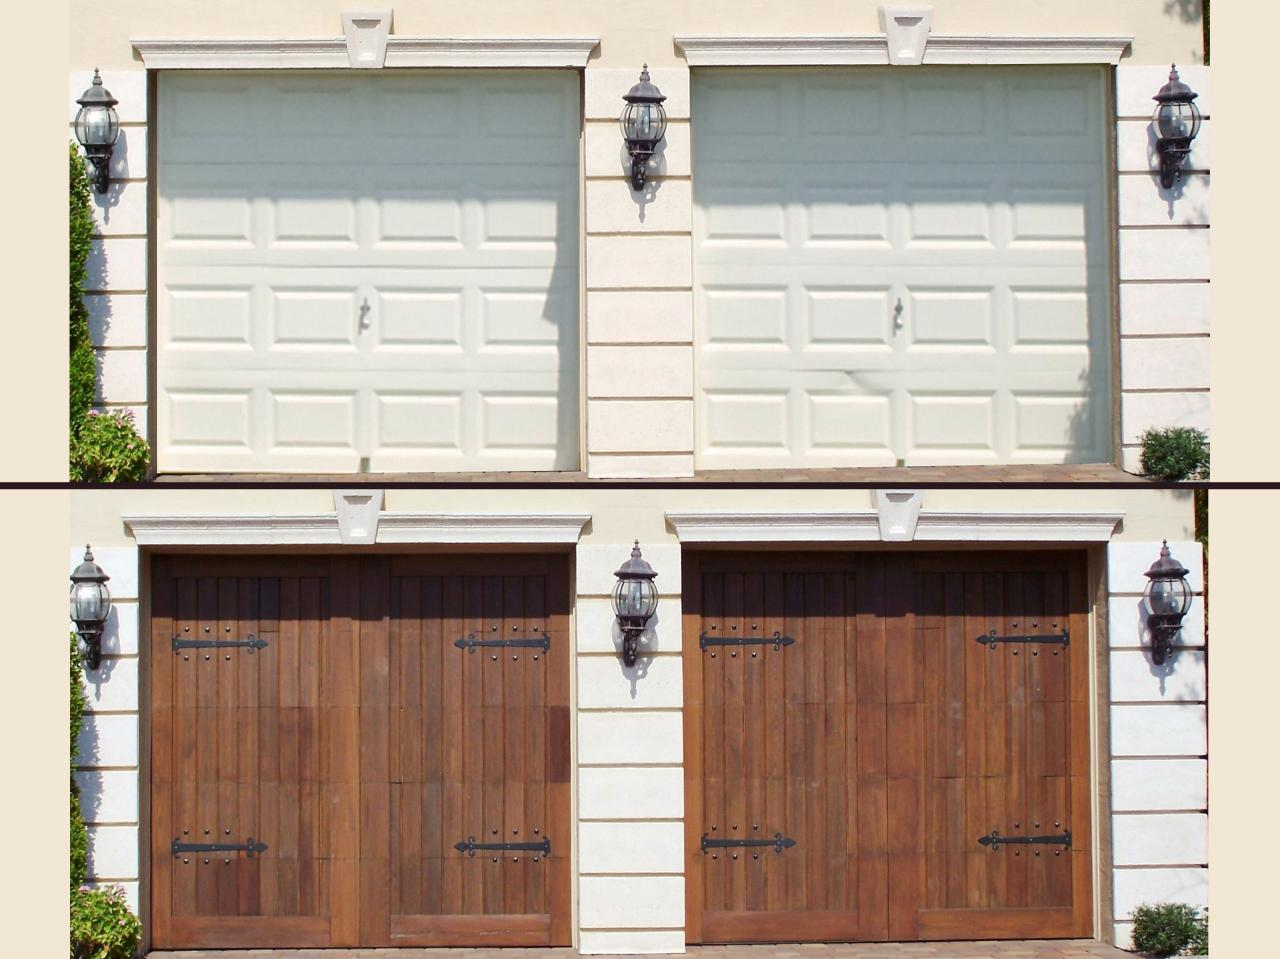 Garage door buying guide diy How to do a home makeover